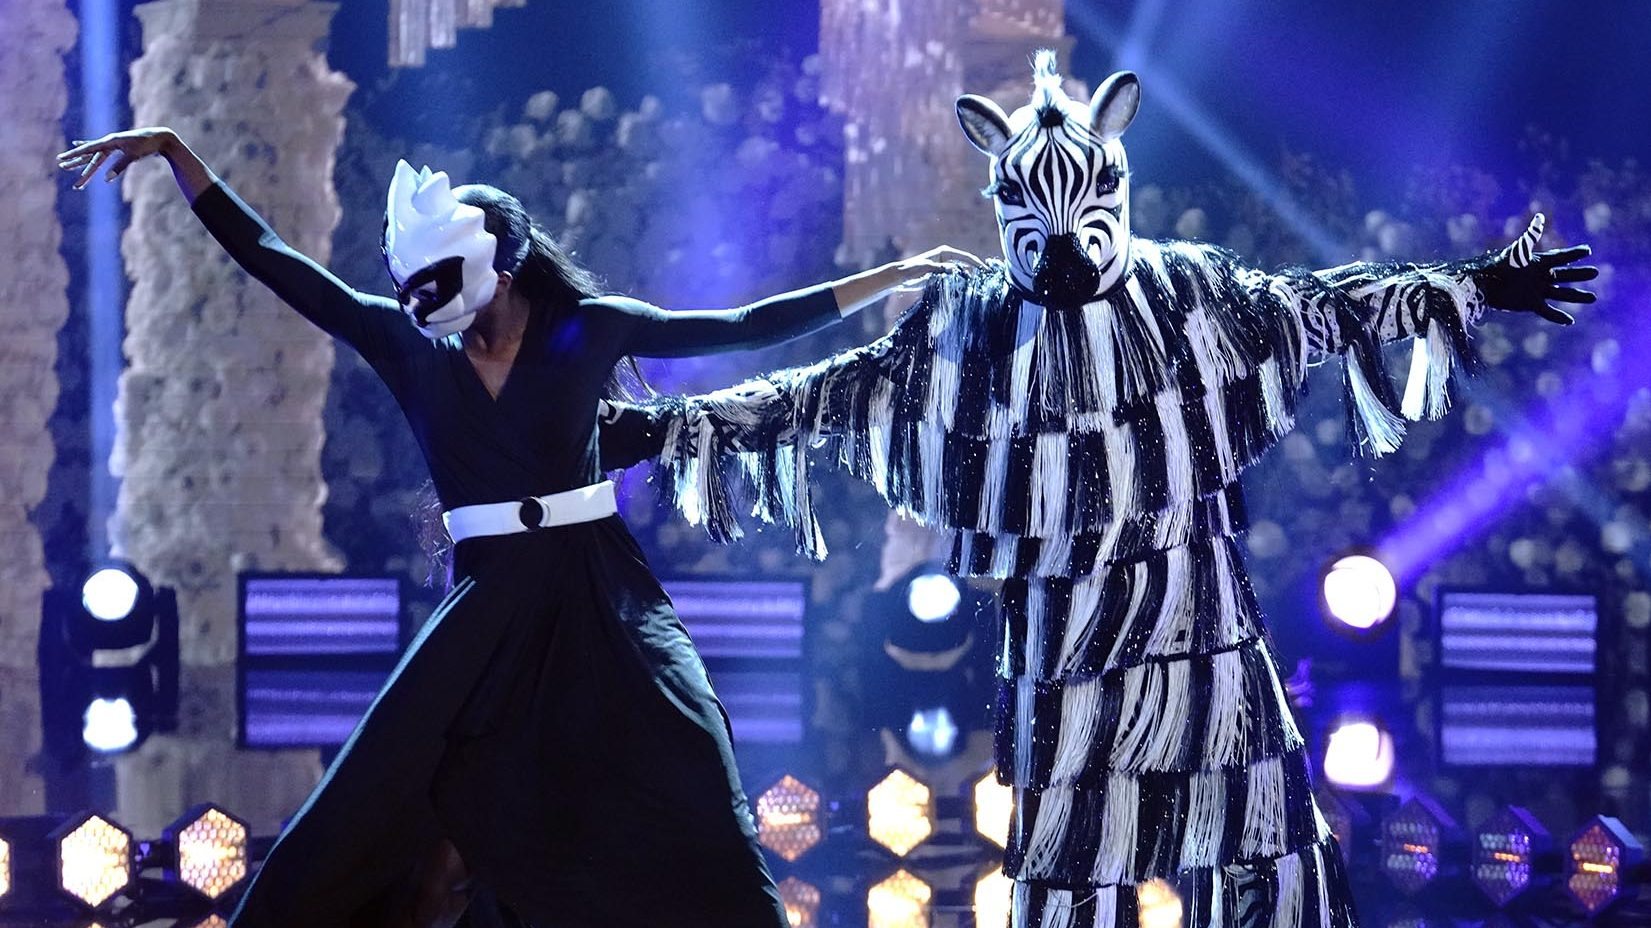 A new twist was introduced in The Masked Singer Season 5